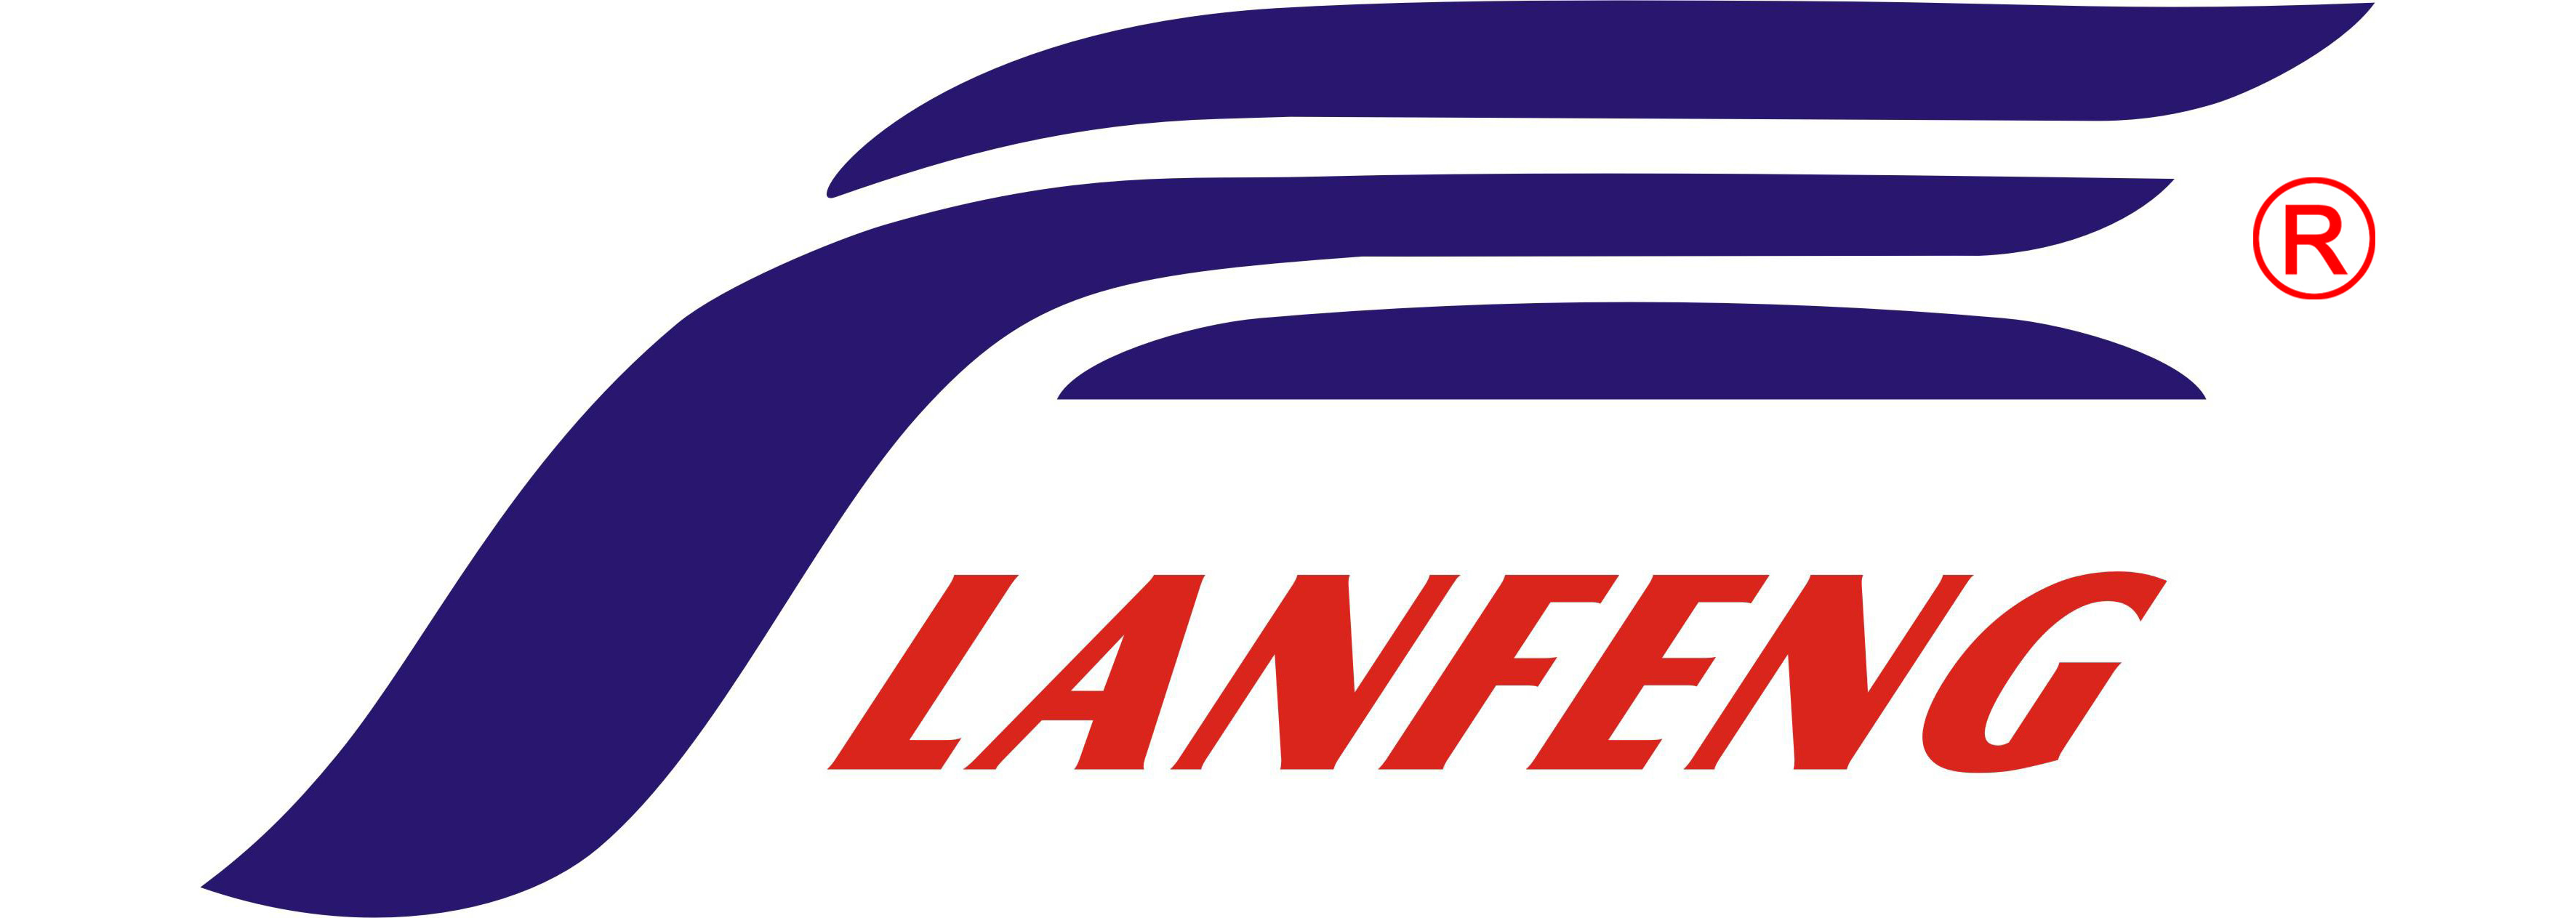 Lanfeng technology INC.